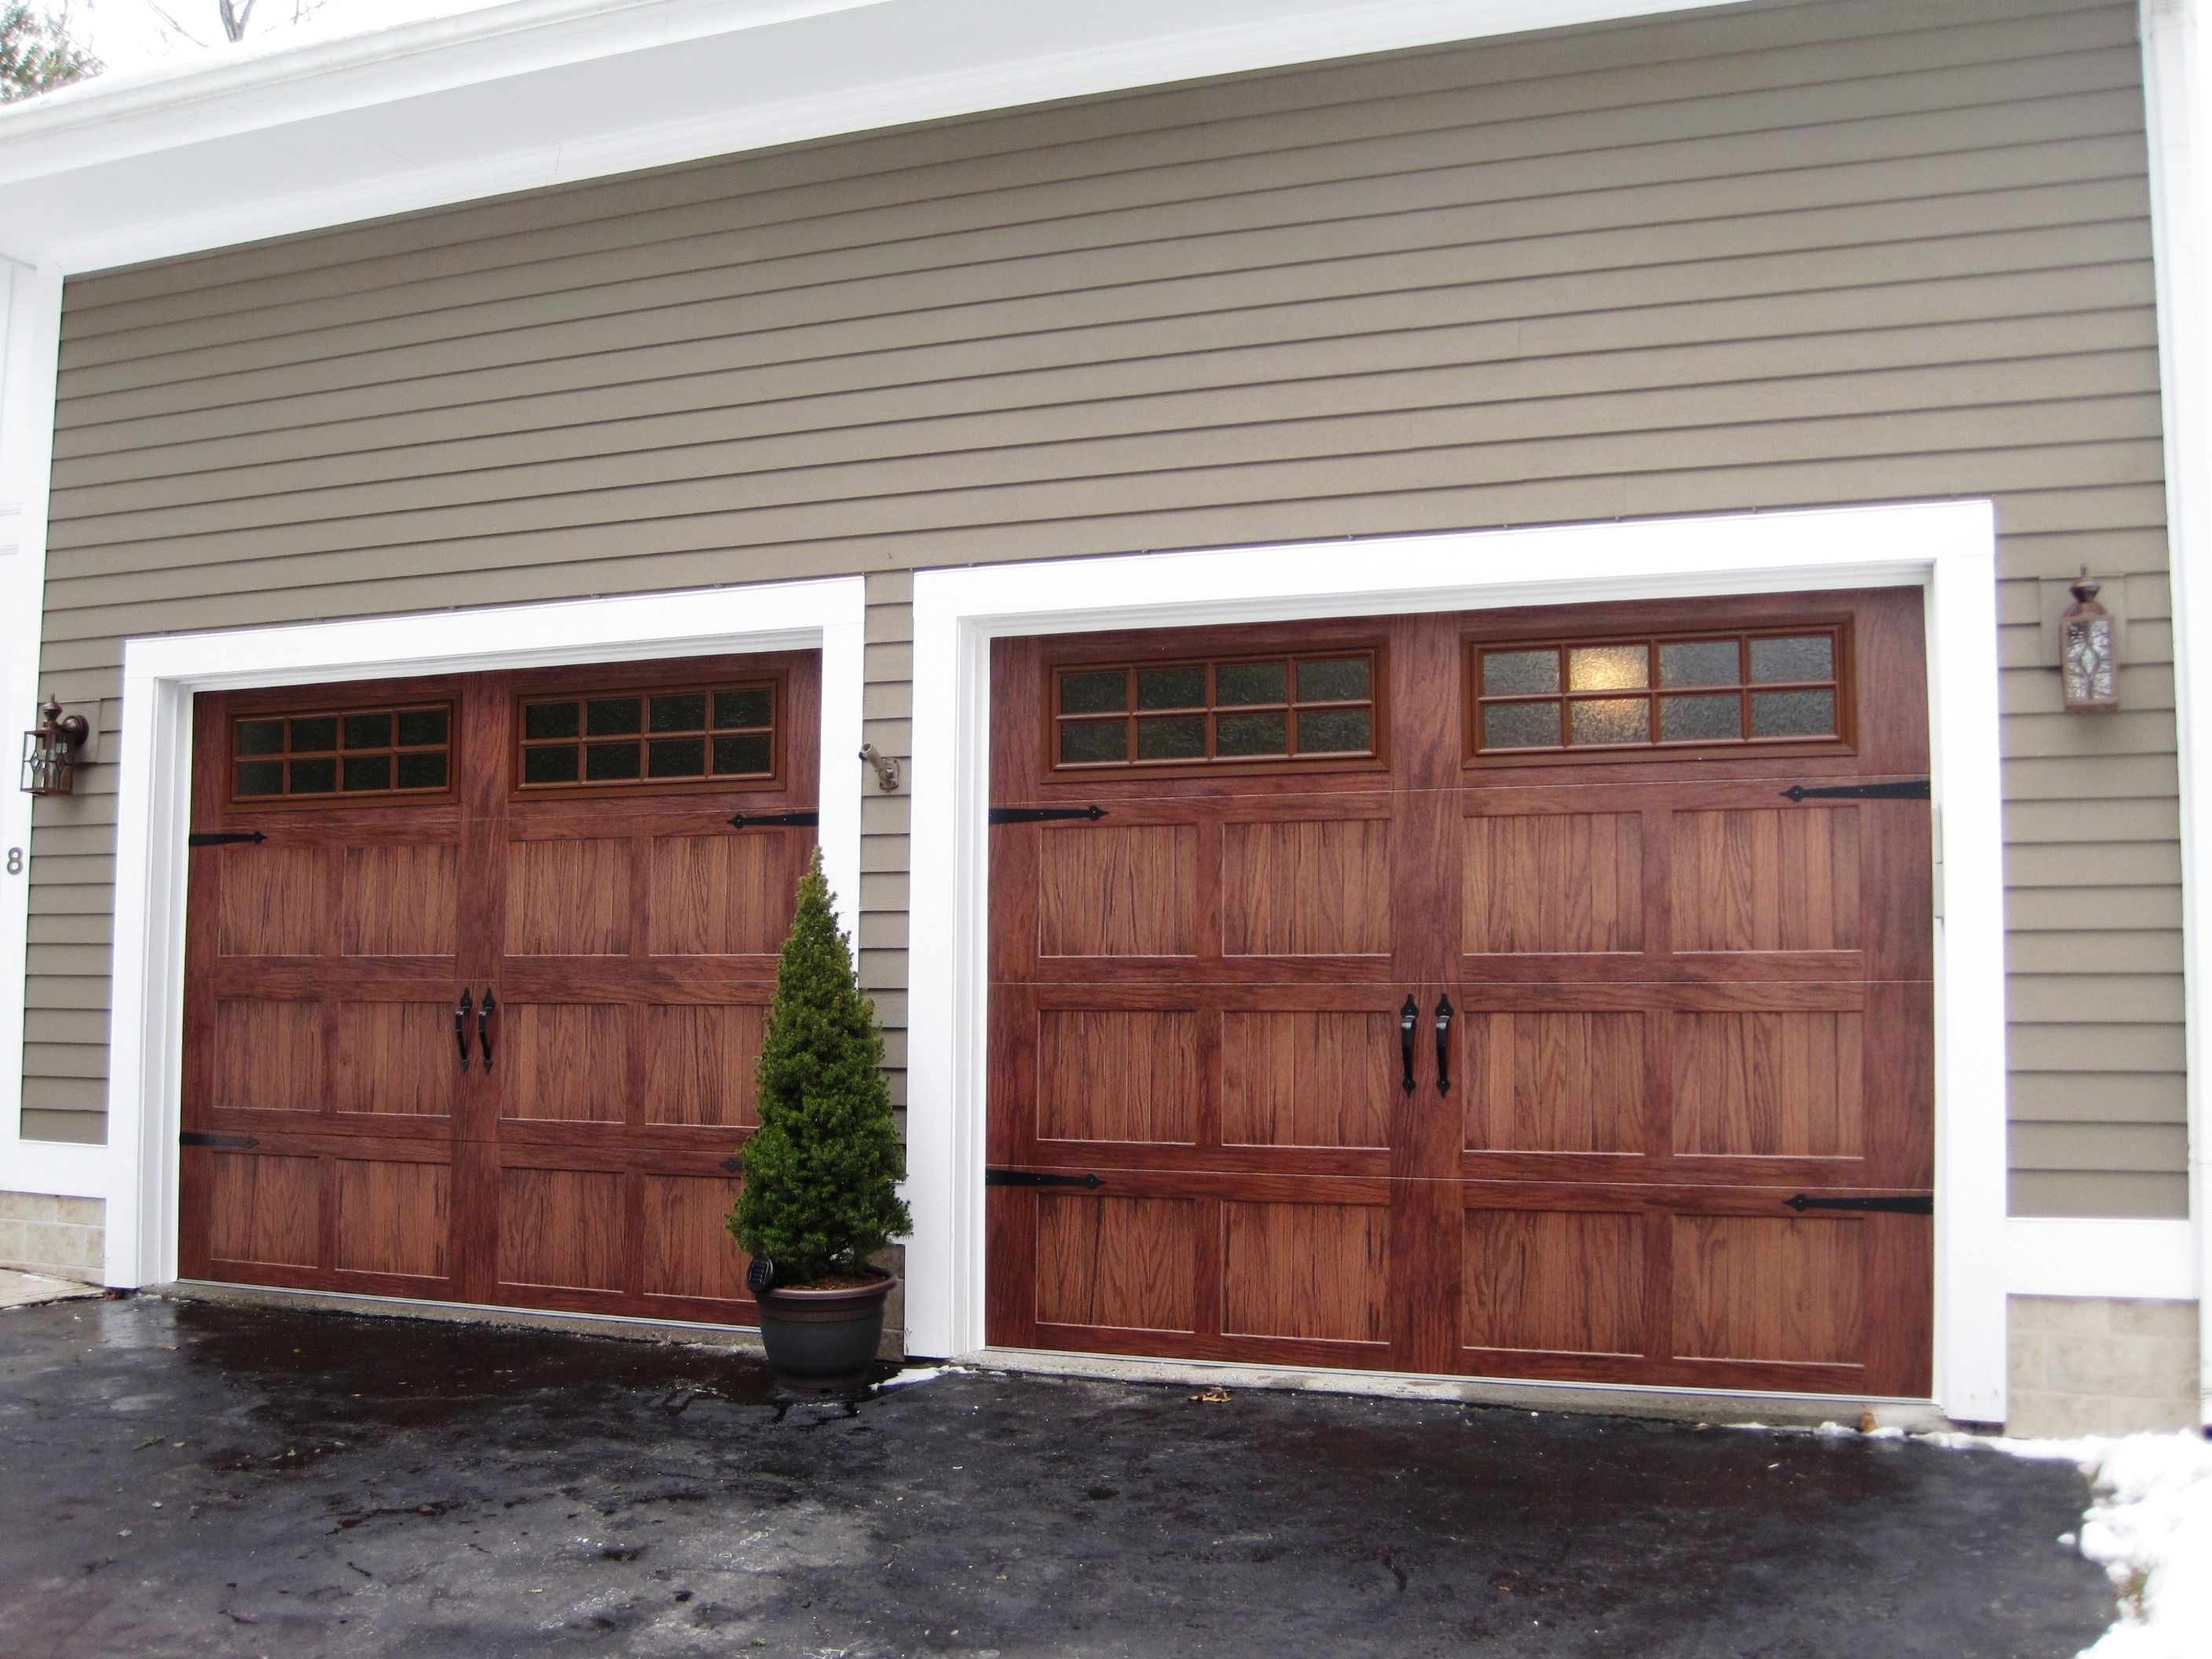 Metal Garage Doors That Look Like Wood For Our Barn Accents throughout measurements 2816 X 2112